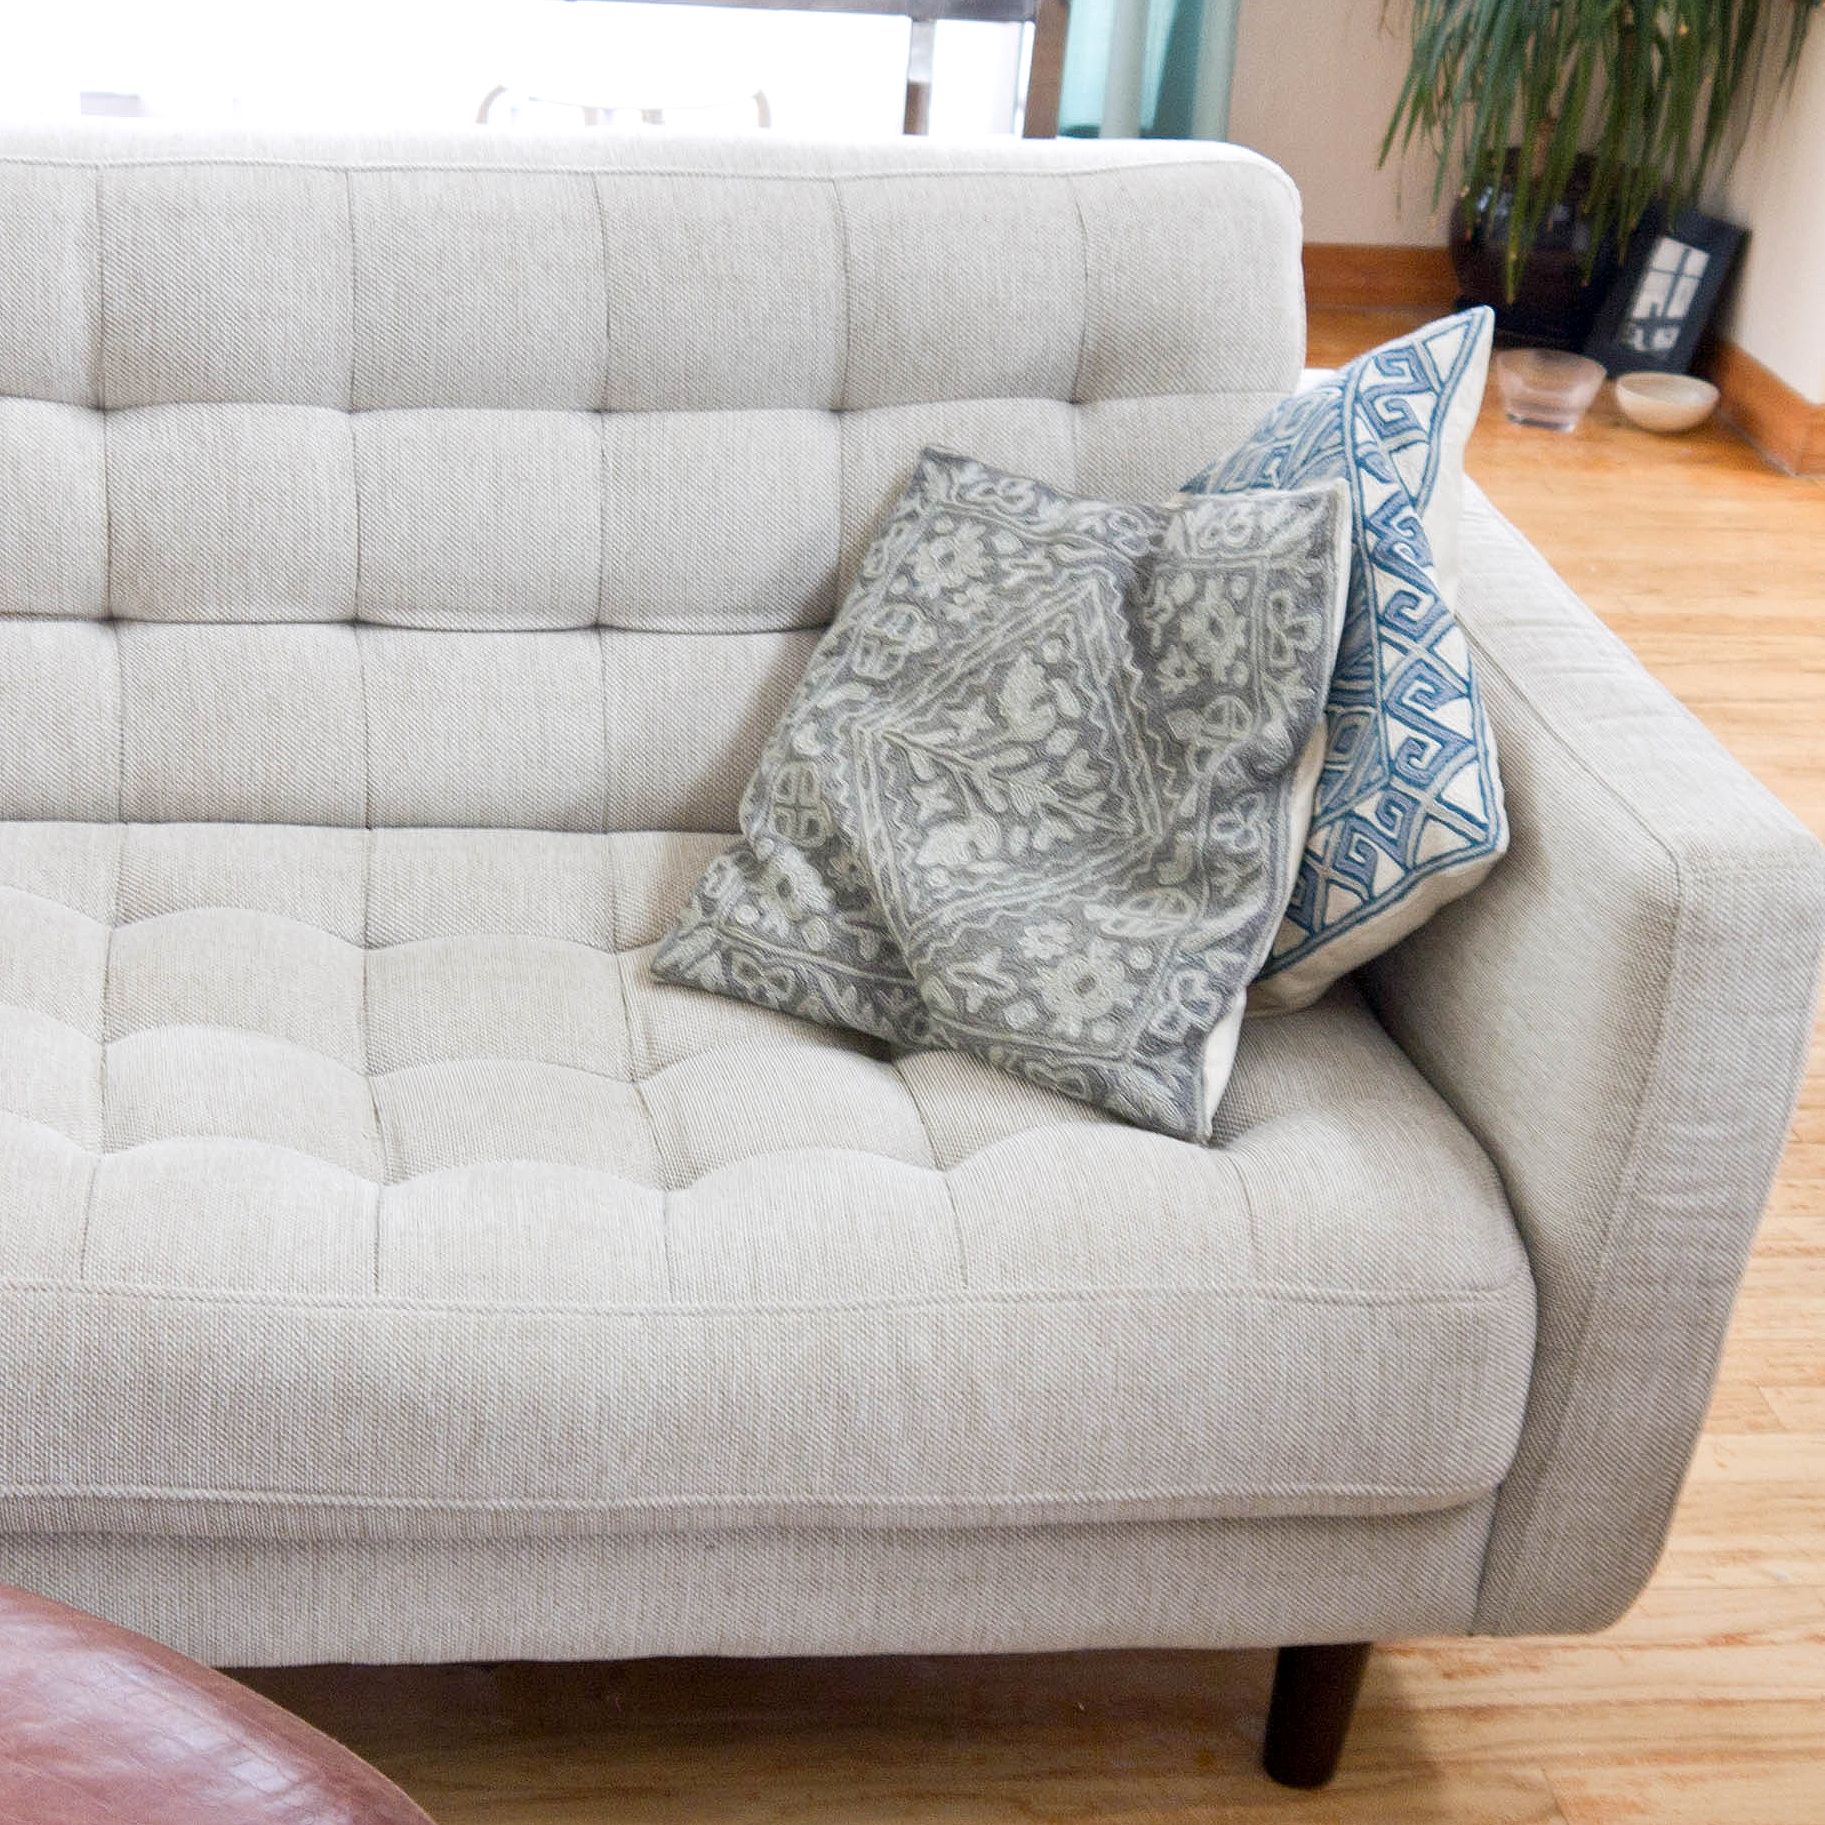 Refresh Your Fabric Couch With This Diy Cleaning Method Clean Fabric Couch Clean Couch Couch Fabric